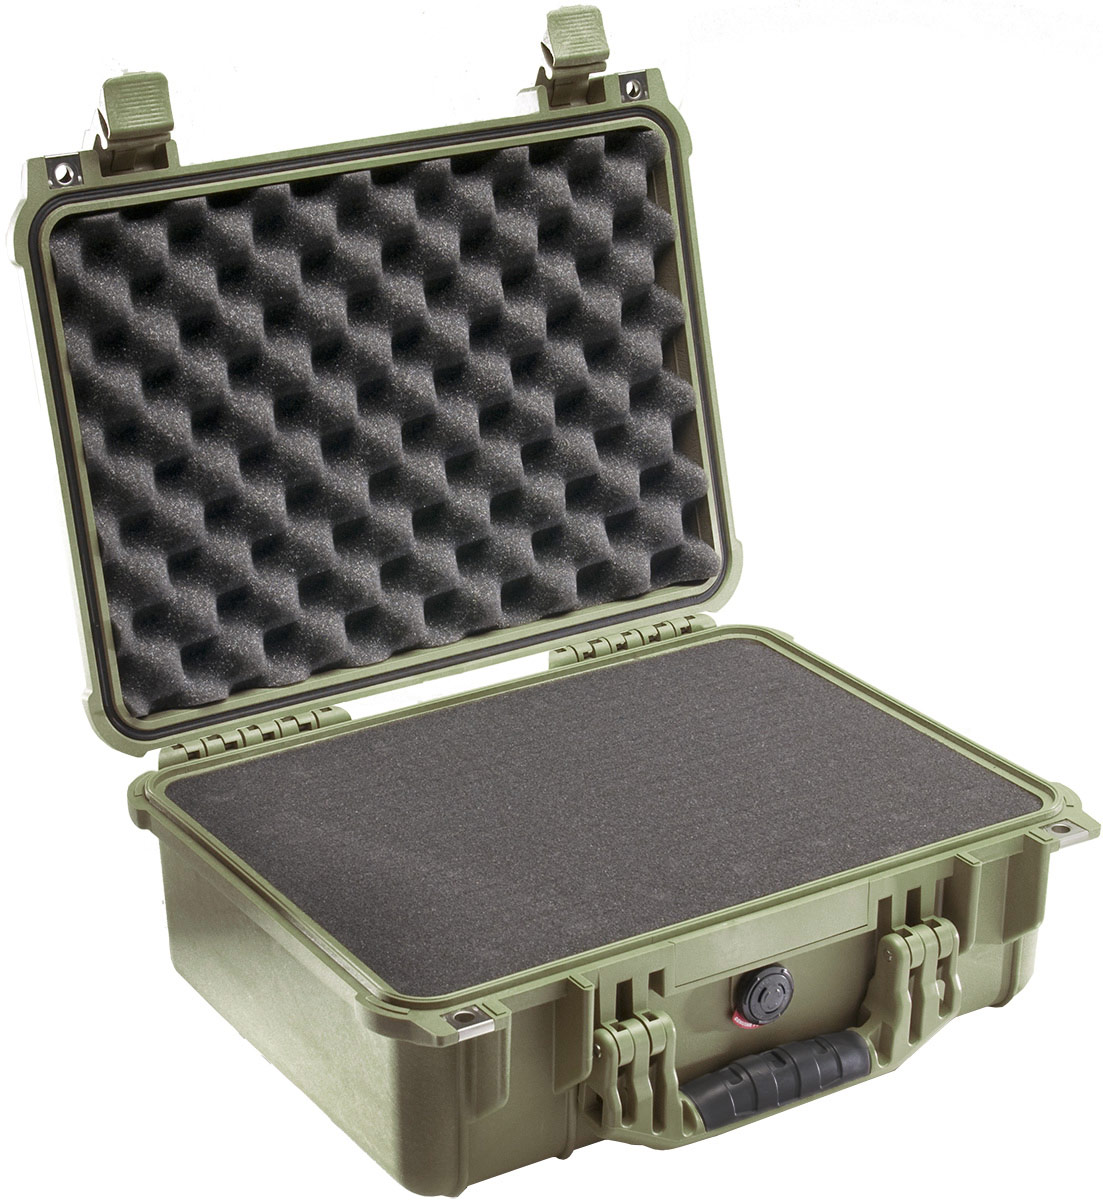 pelican 1450 green camera protector case